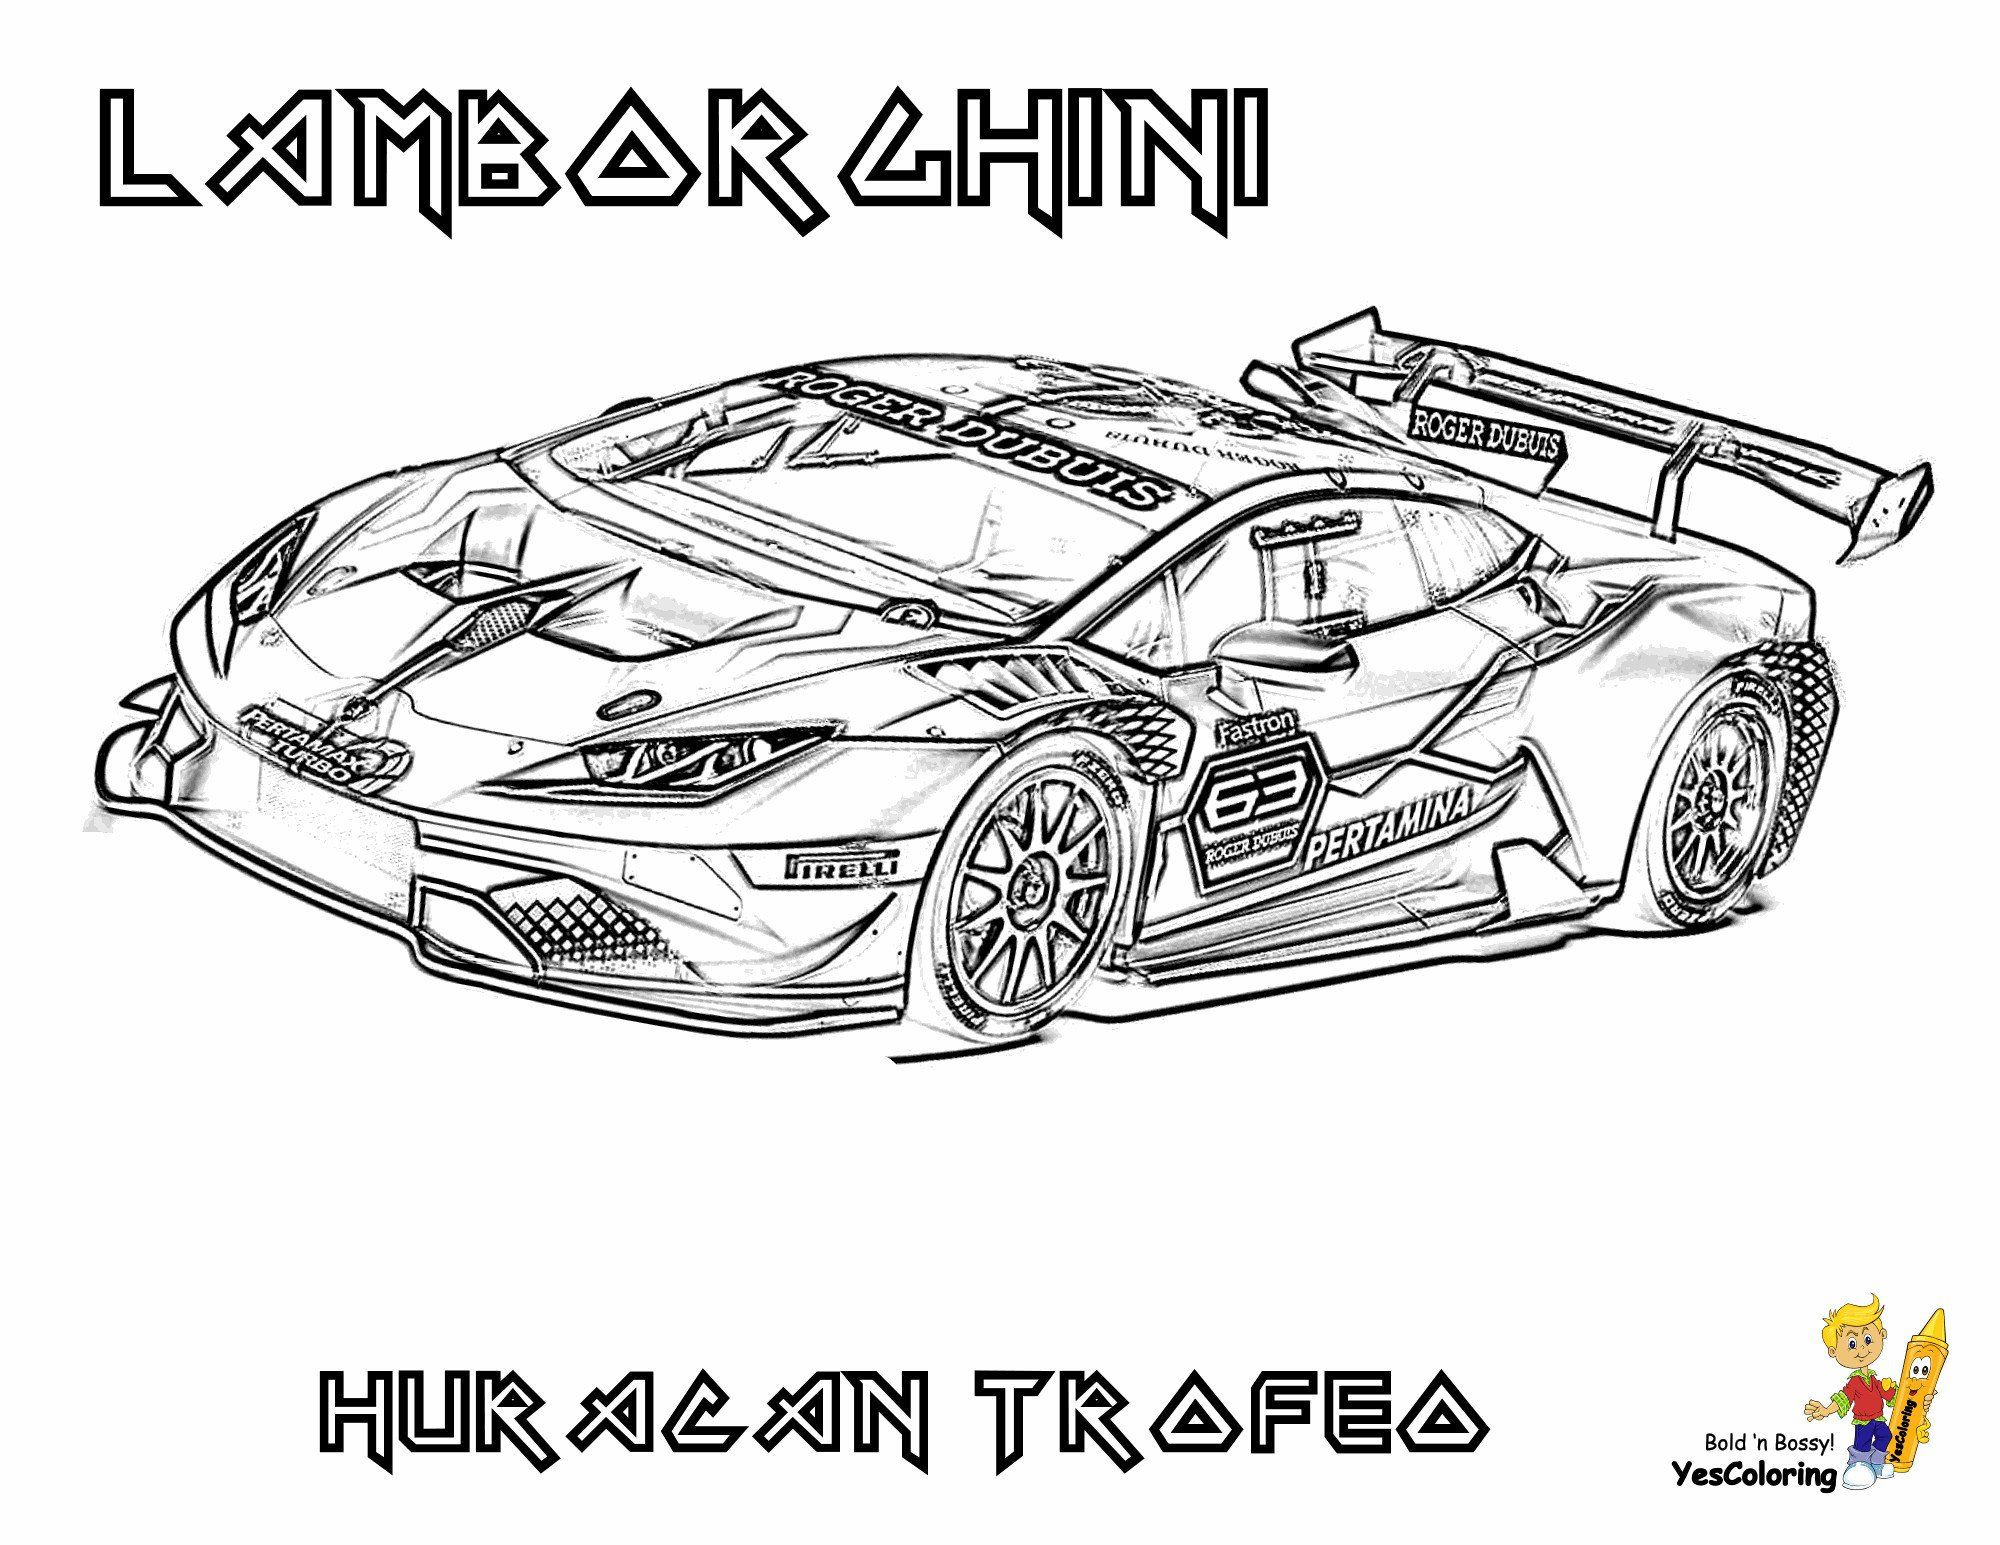 Sports Car Coloring Pages Unique Sports Cars Coloring Pages Elegant Lamborghini Huracan Cars Coloring Pages Sports Coloring Pages Coloring Pages Inspirational